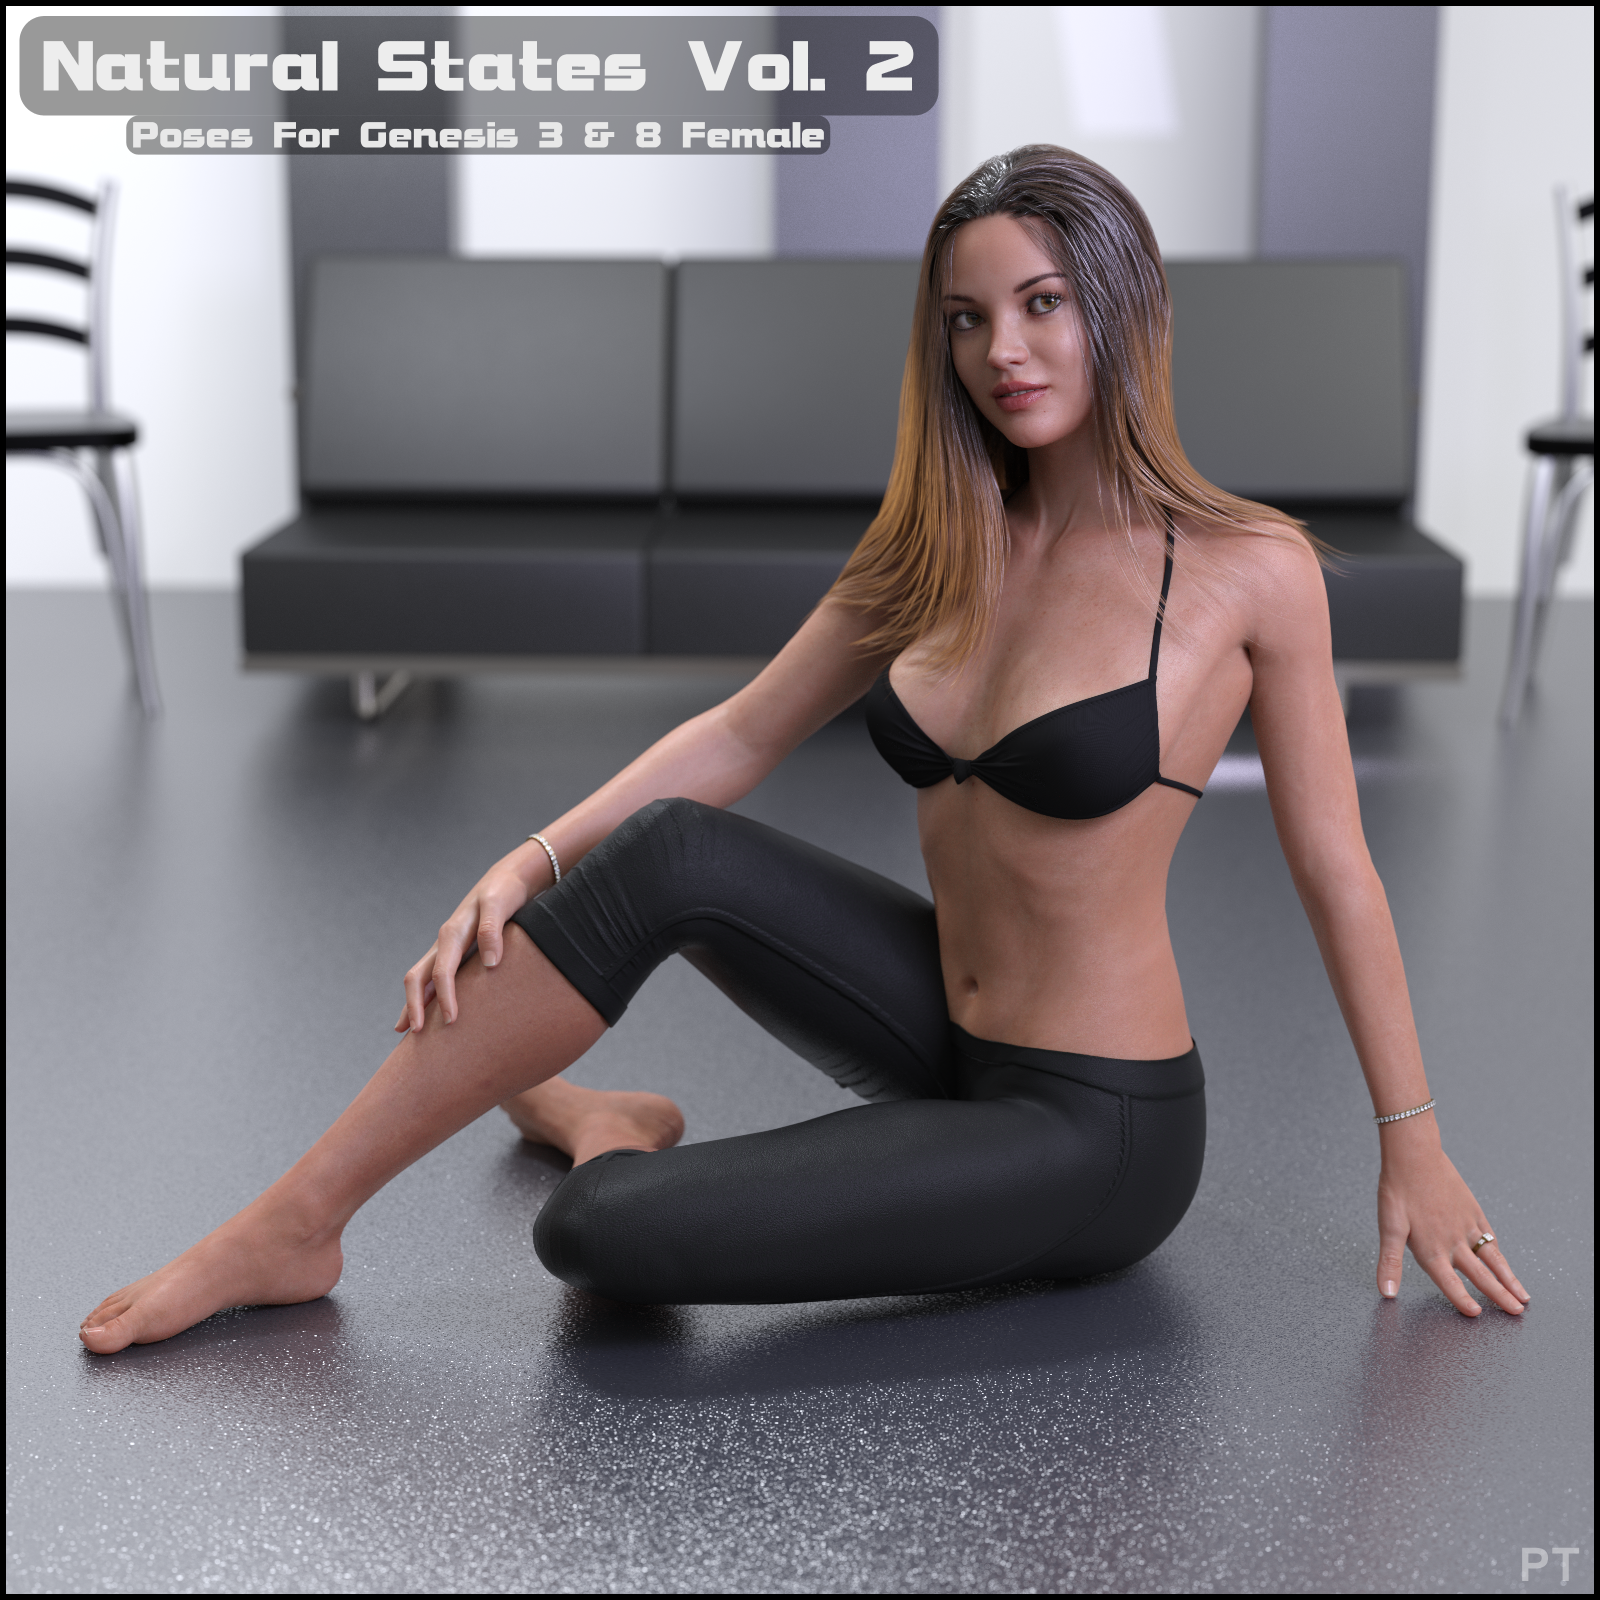 Paper Tiger's Natural States Poses for Genesis 3 and 8 Females Volume 2